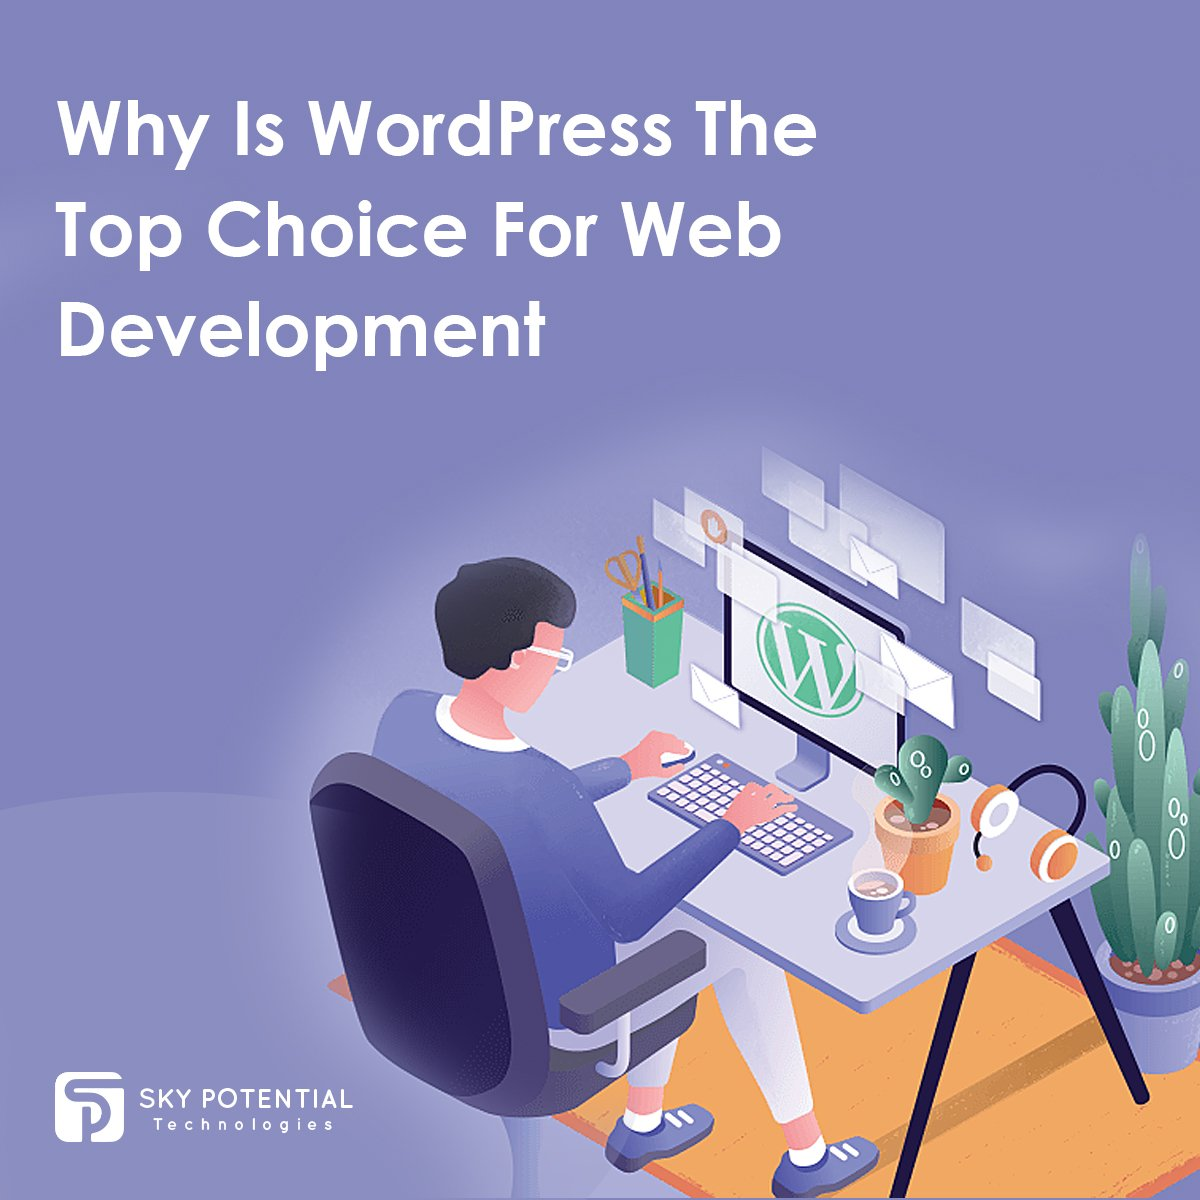 If you are looking for the pros of Word Press to drive more opportunities for your business, then let's have a look to take advantage of Word Press for web development.Read: https://worldwidetechthings.wordpress.com/2019/08/19/why-is-wordpress-the-top-choice-for-web-development/…#WordPress #webdevelopment #SkyPotential